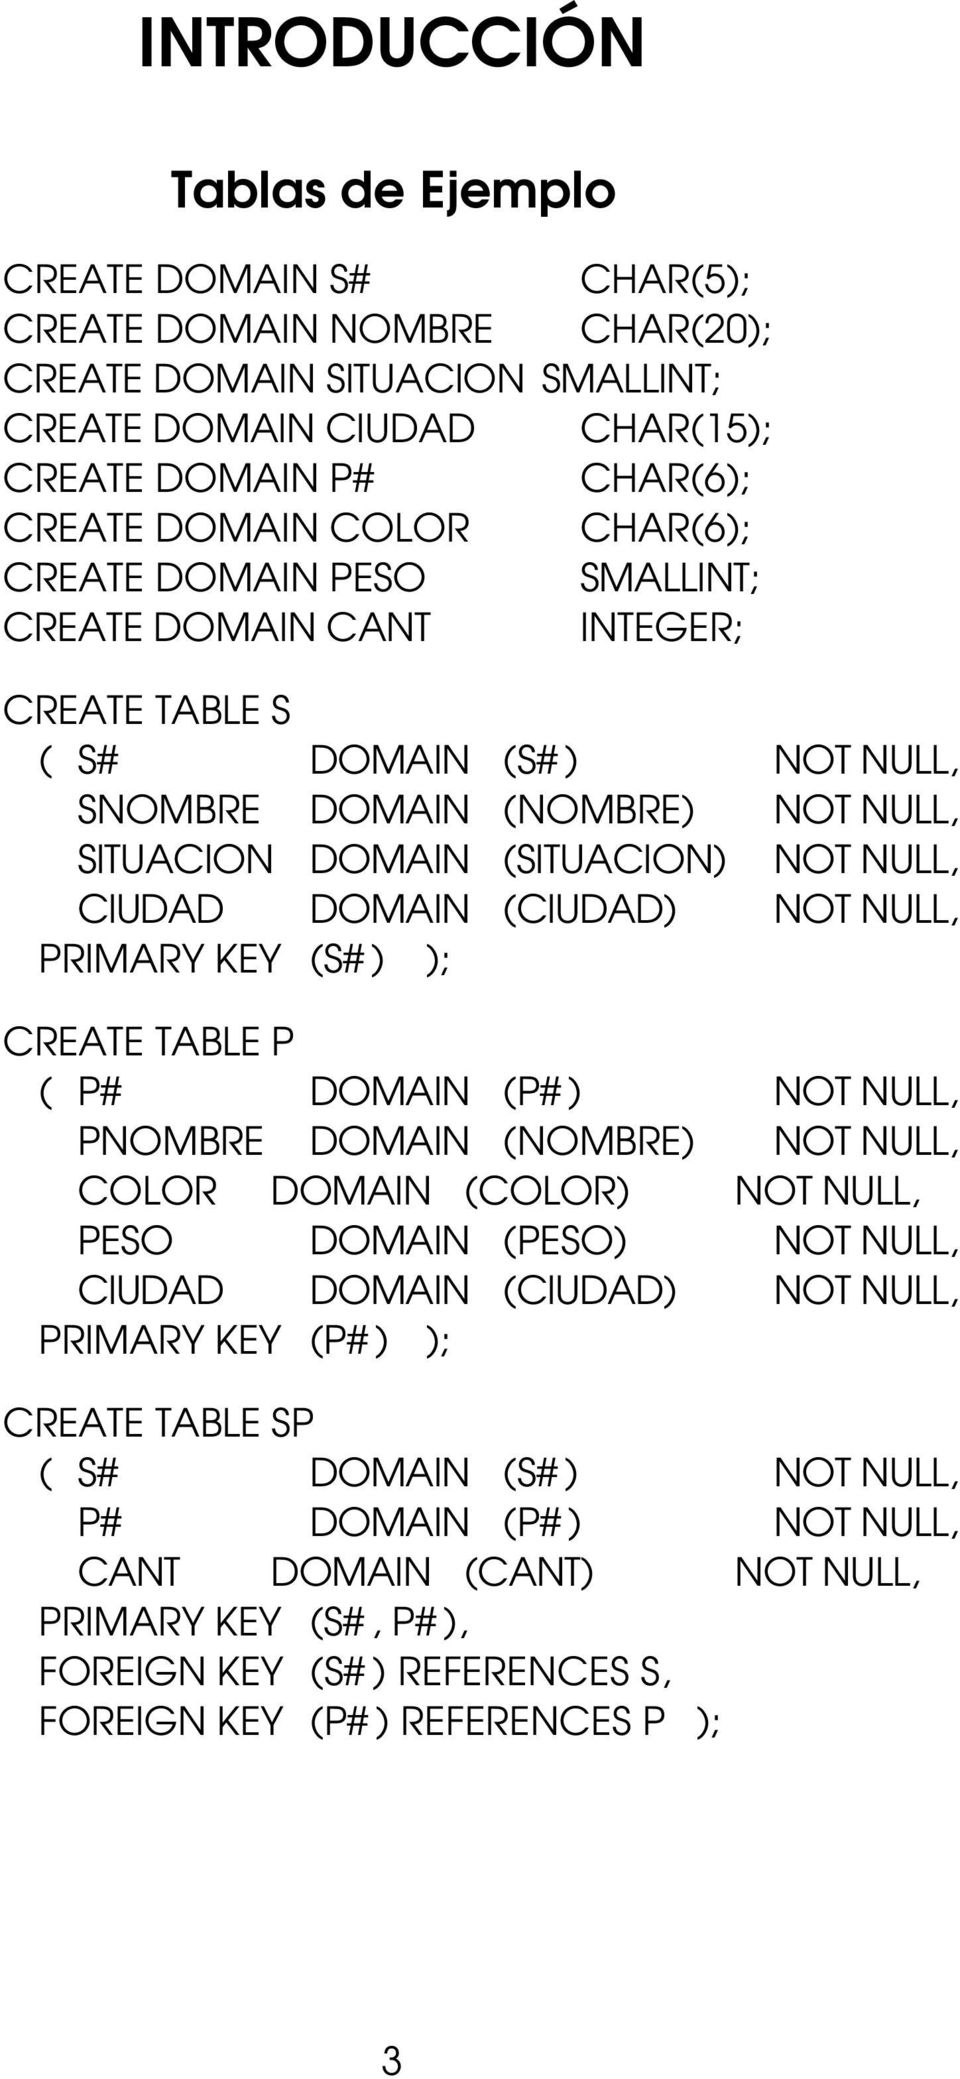 (CIUDAD) NOT NULL, PRIMARY KEY (S#) ); CREATE TABLE P ( P# DOMAIN (P#) NOT NULL, PNOMBRE DOMAIN (NOMBRE) NOT NULL, COLOR DOMAIN (COLOR) NOT NULL, PESO DOMAIN (PESO) NOT NULL, CIUDAD DOMAIN (CIUDAD)